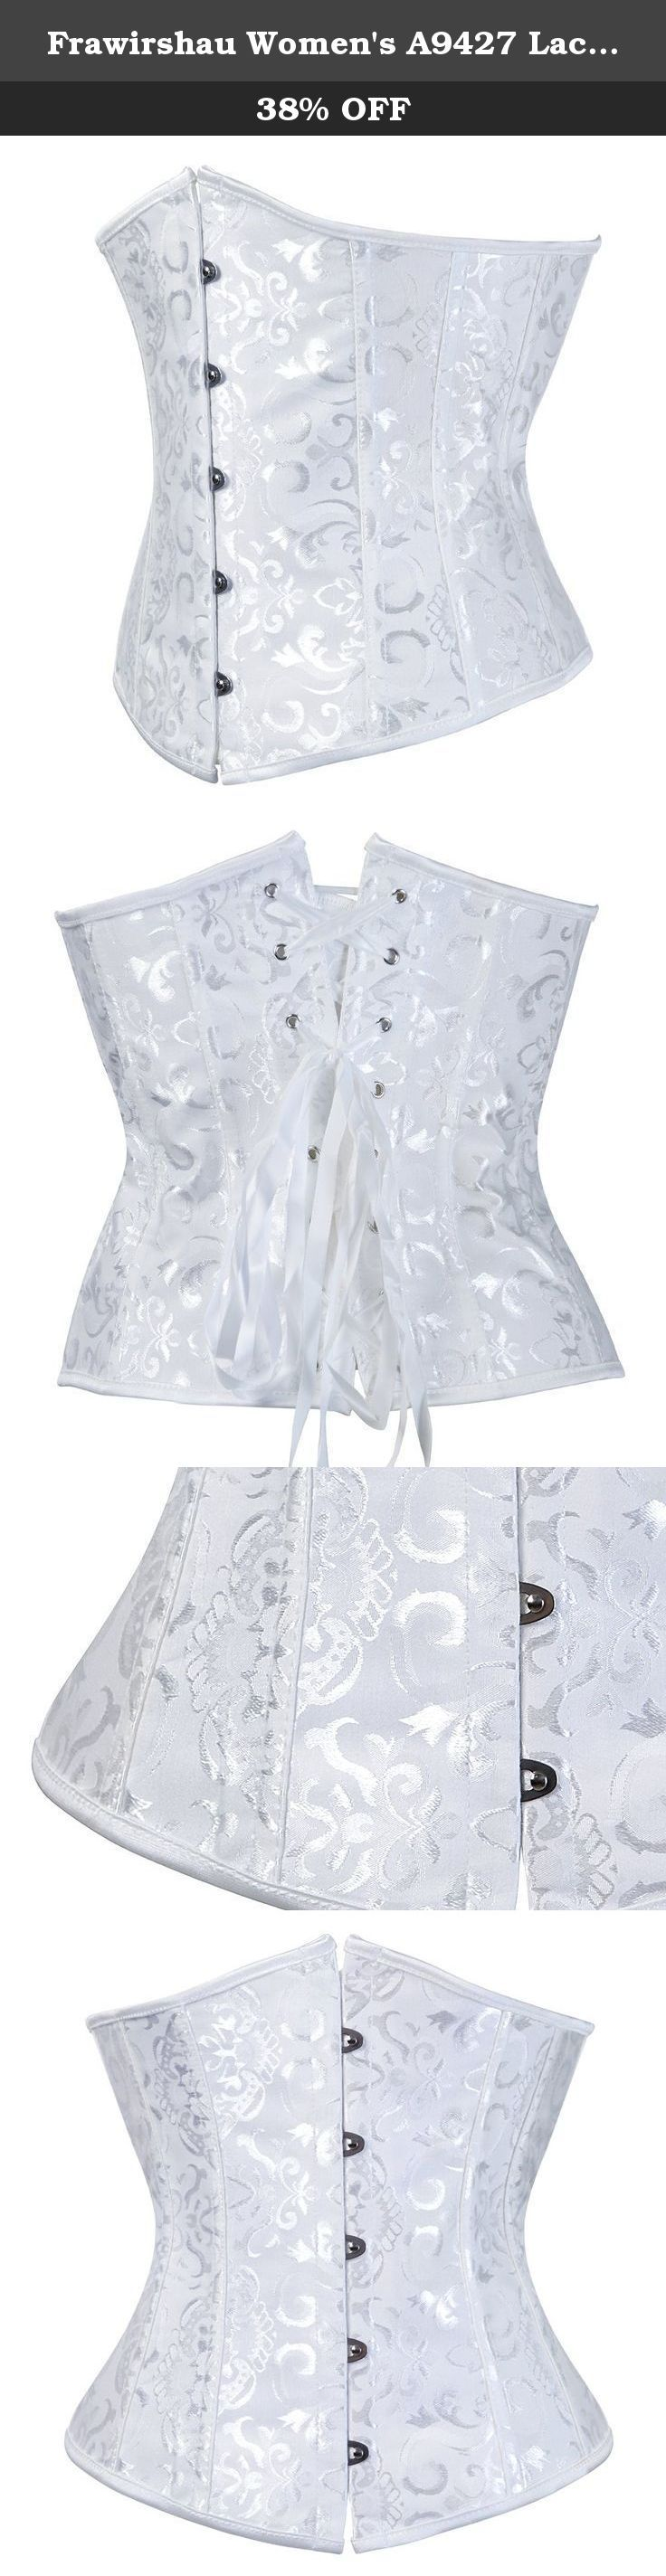 Frawirshau Women's A9427 Lace Up Boned Underbust Waist Trainer Corset Medium White. This beaufitul vintage style corset is made of two Layers of fabric,plastic bones. The corset is designed by waist size, please choose your corset according to your waistline. If your waist measurment is between two size, please choose the smaller size. If you are not sure what size you would need.Please leave your measurment to us,we can pick up the size for you. These fashion corsets are perfect for...